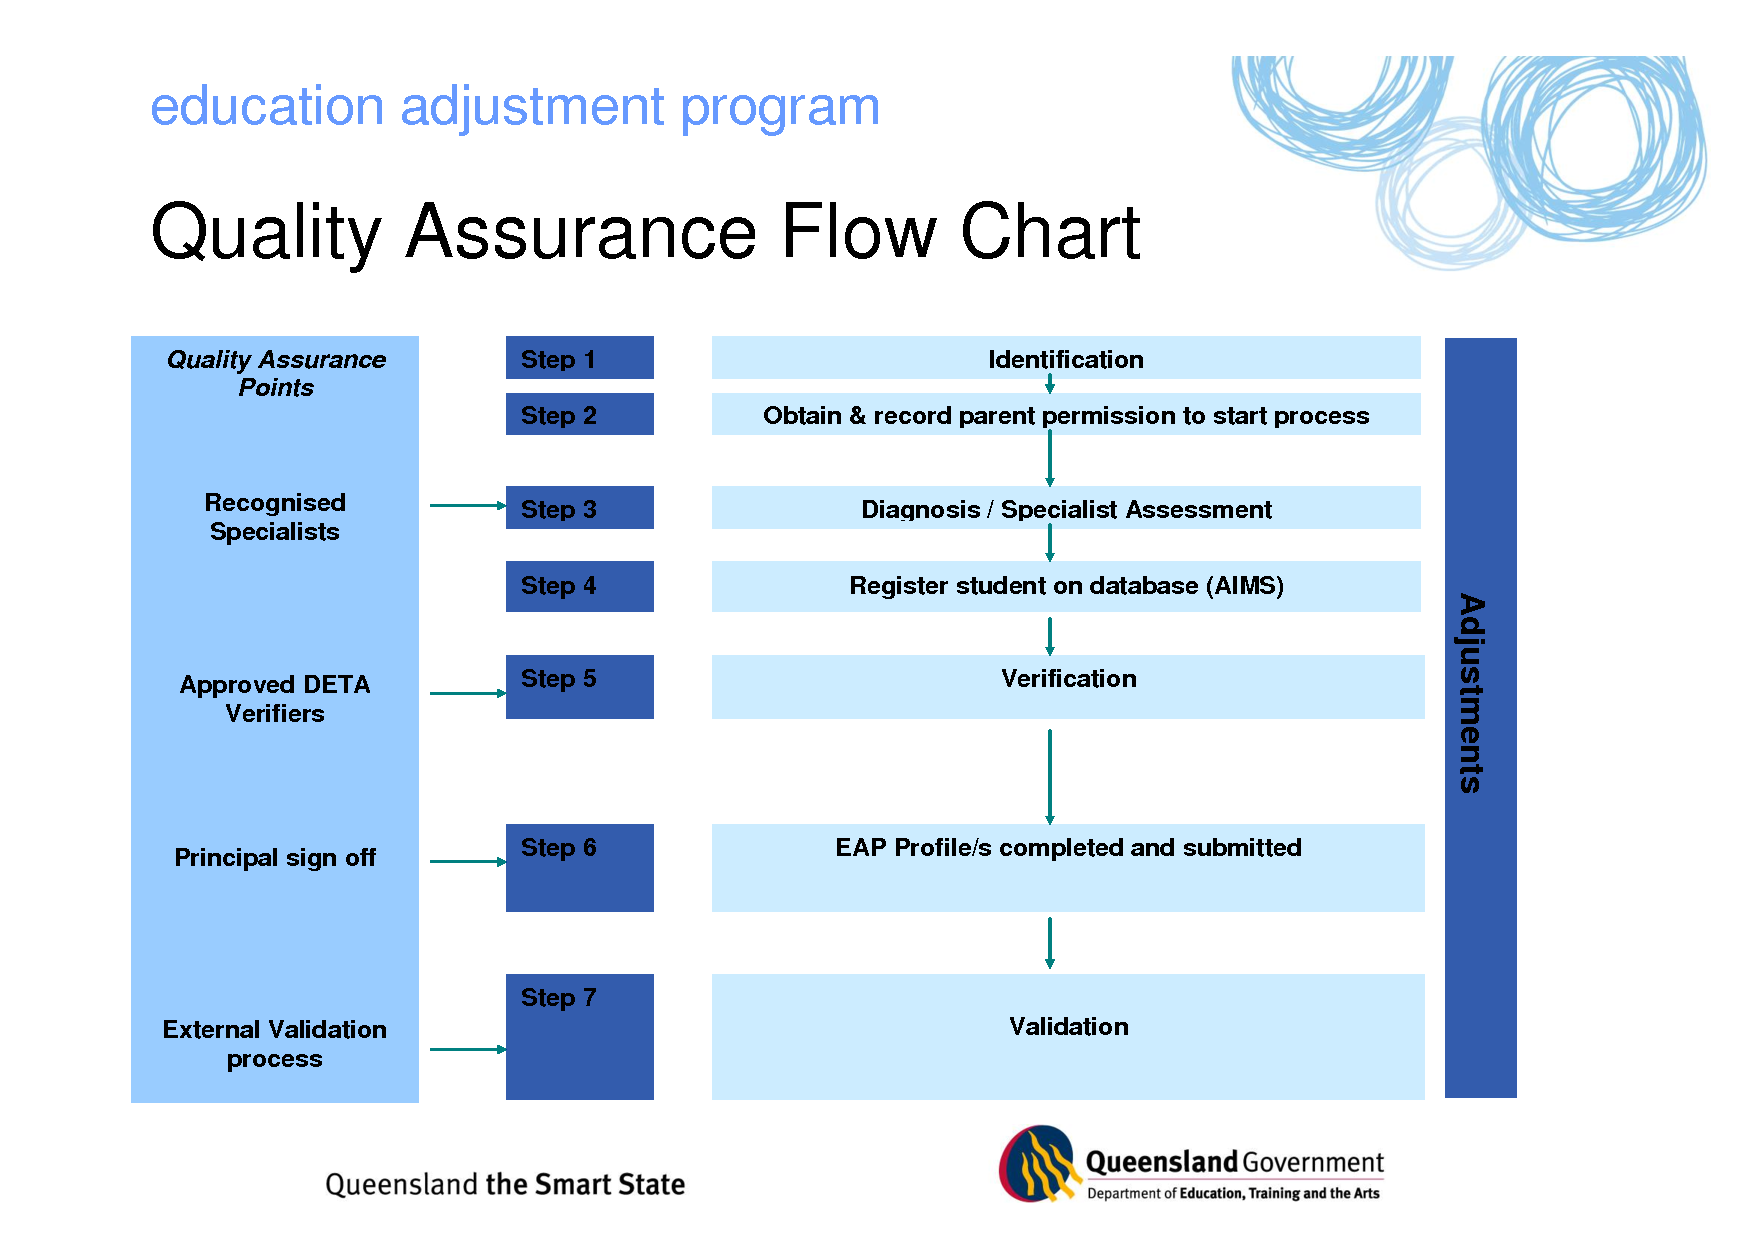 Program management process templates quality assurance flow program management process templates quality assurance flow chart nvjuhfo Choice Image